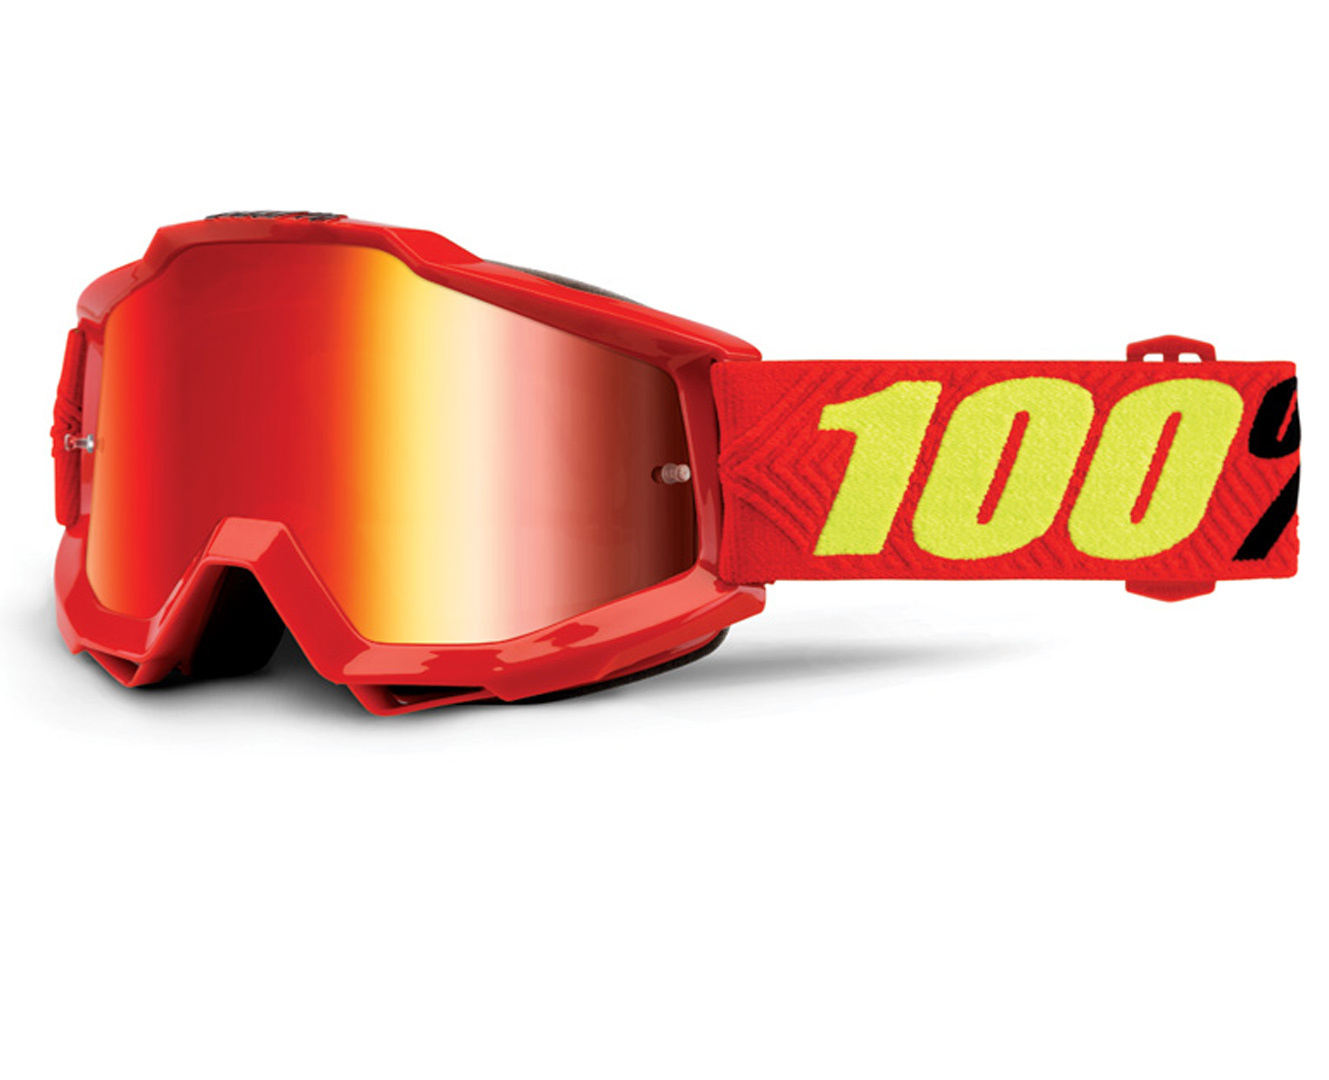 100% Accuri Extra Motocross Brille, rot-gelb, rot-gelb RC Modellbau